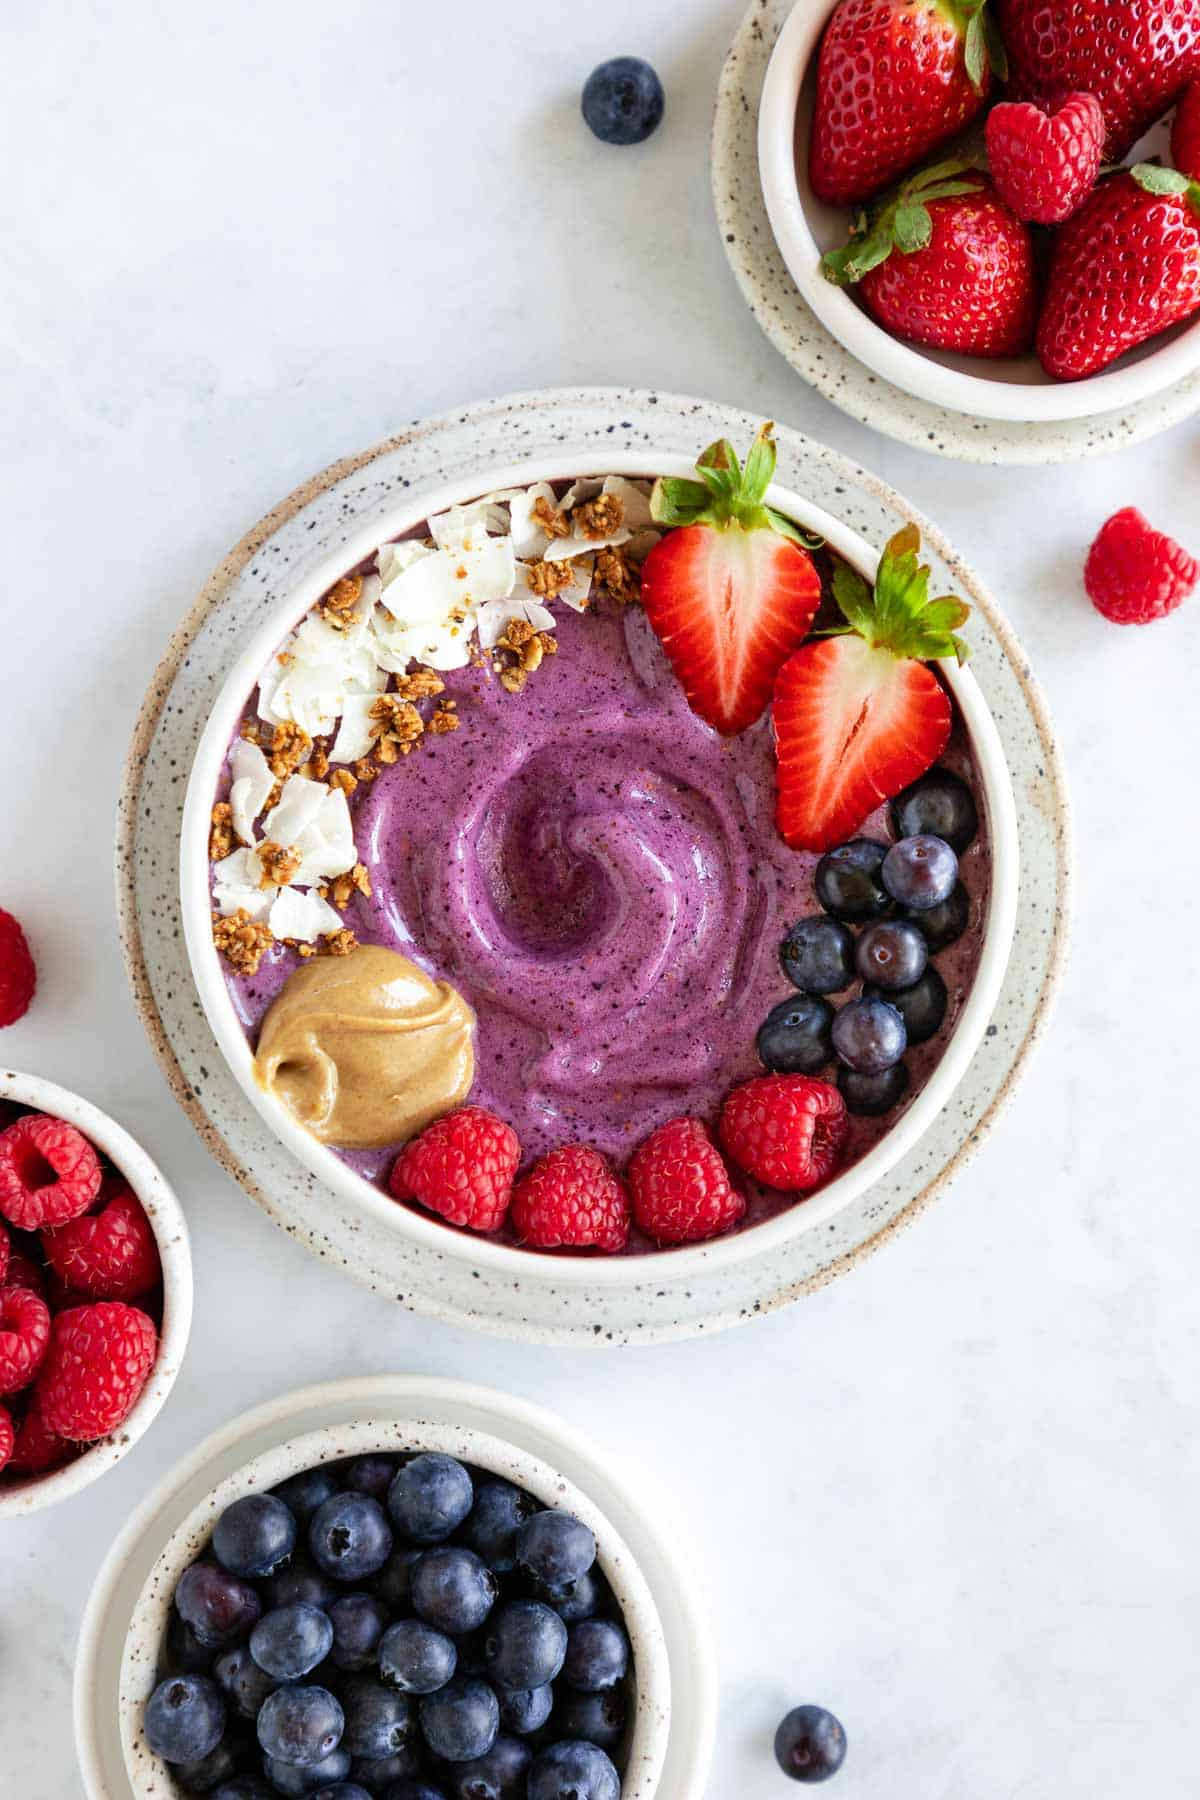 berry smoothie bowl on a speckled ceramic plate surrounded by bowls of blueberries, raspberries, and strawberries